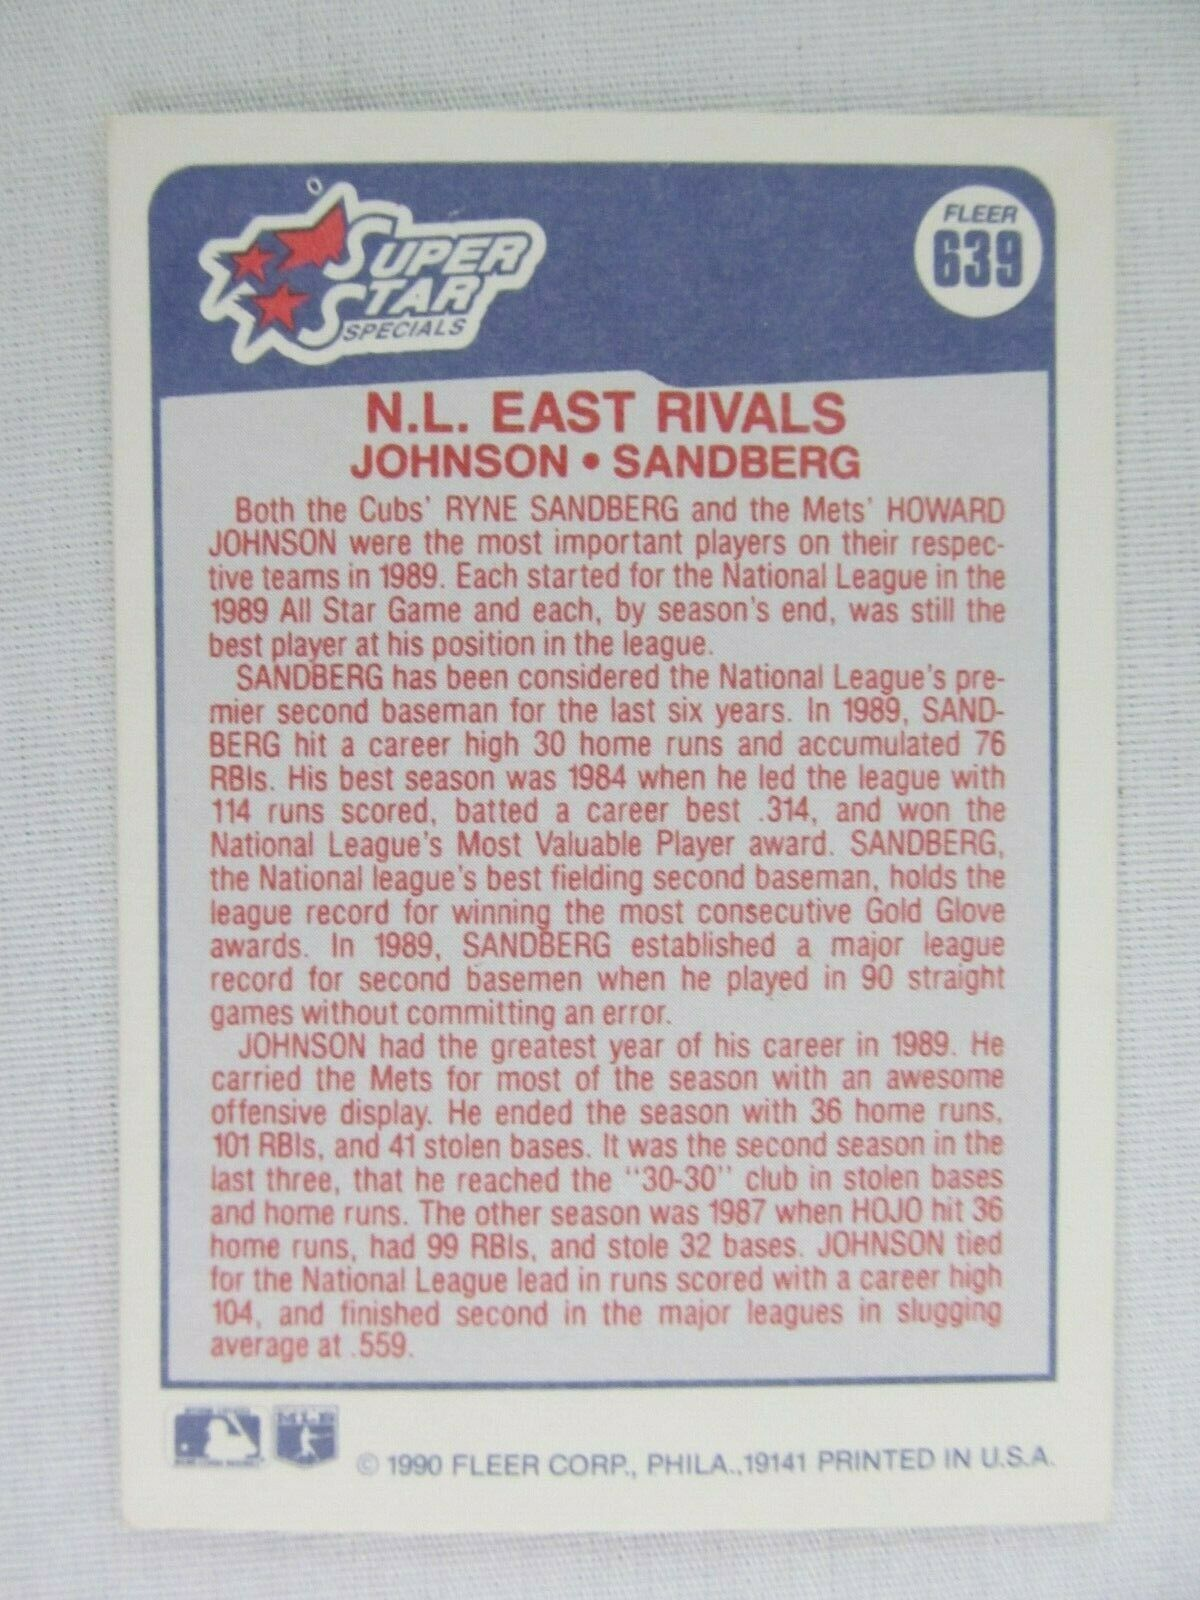 Howard Johnson Ryne Sandberg Rivals 1990 Fleer Baseball Card Number 639